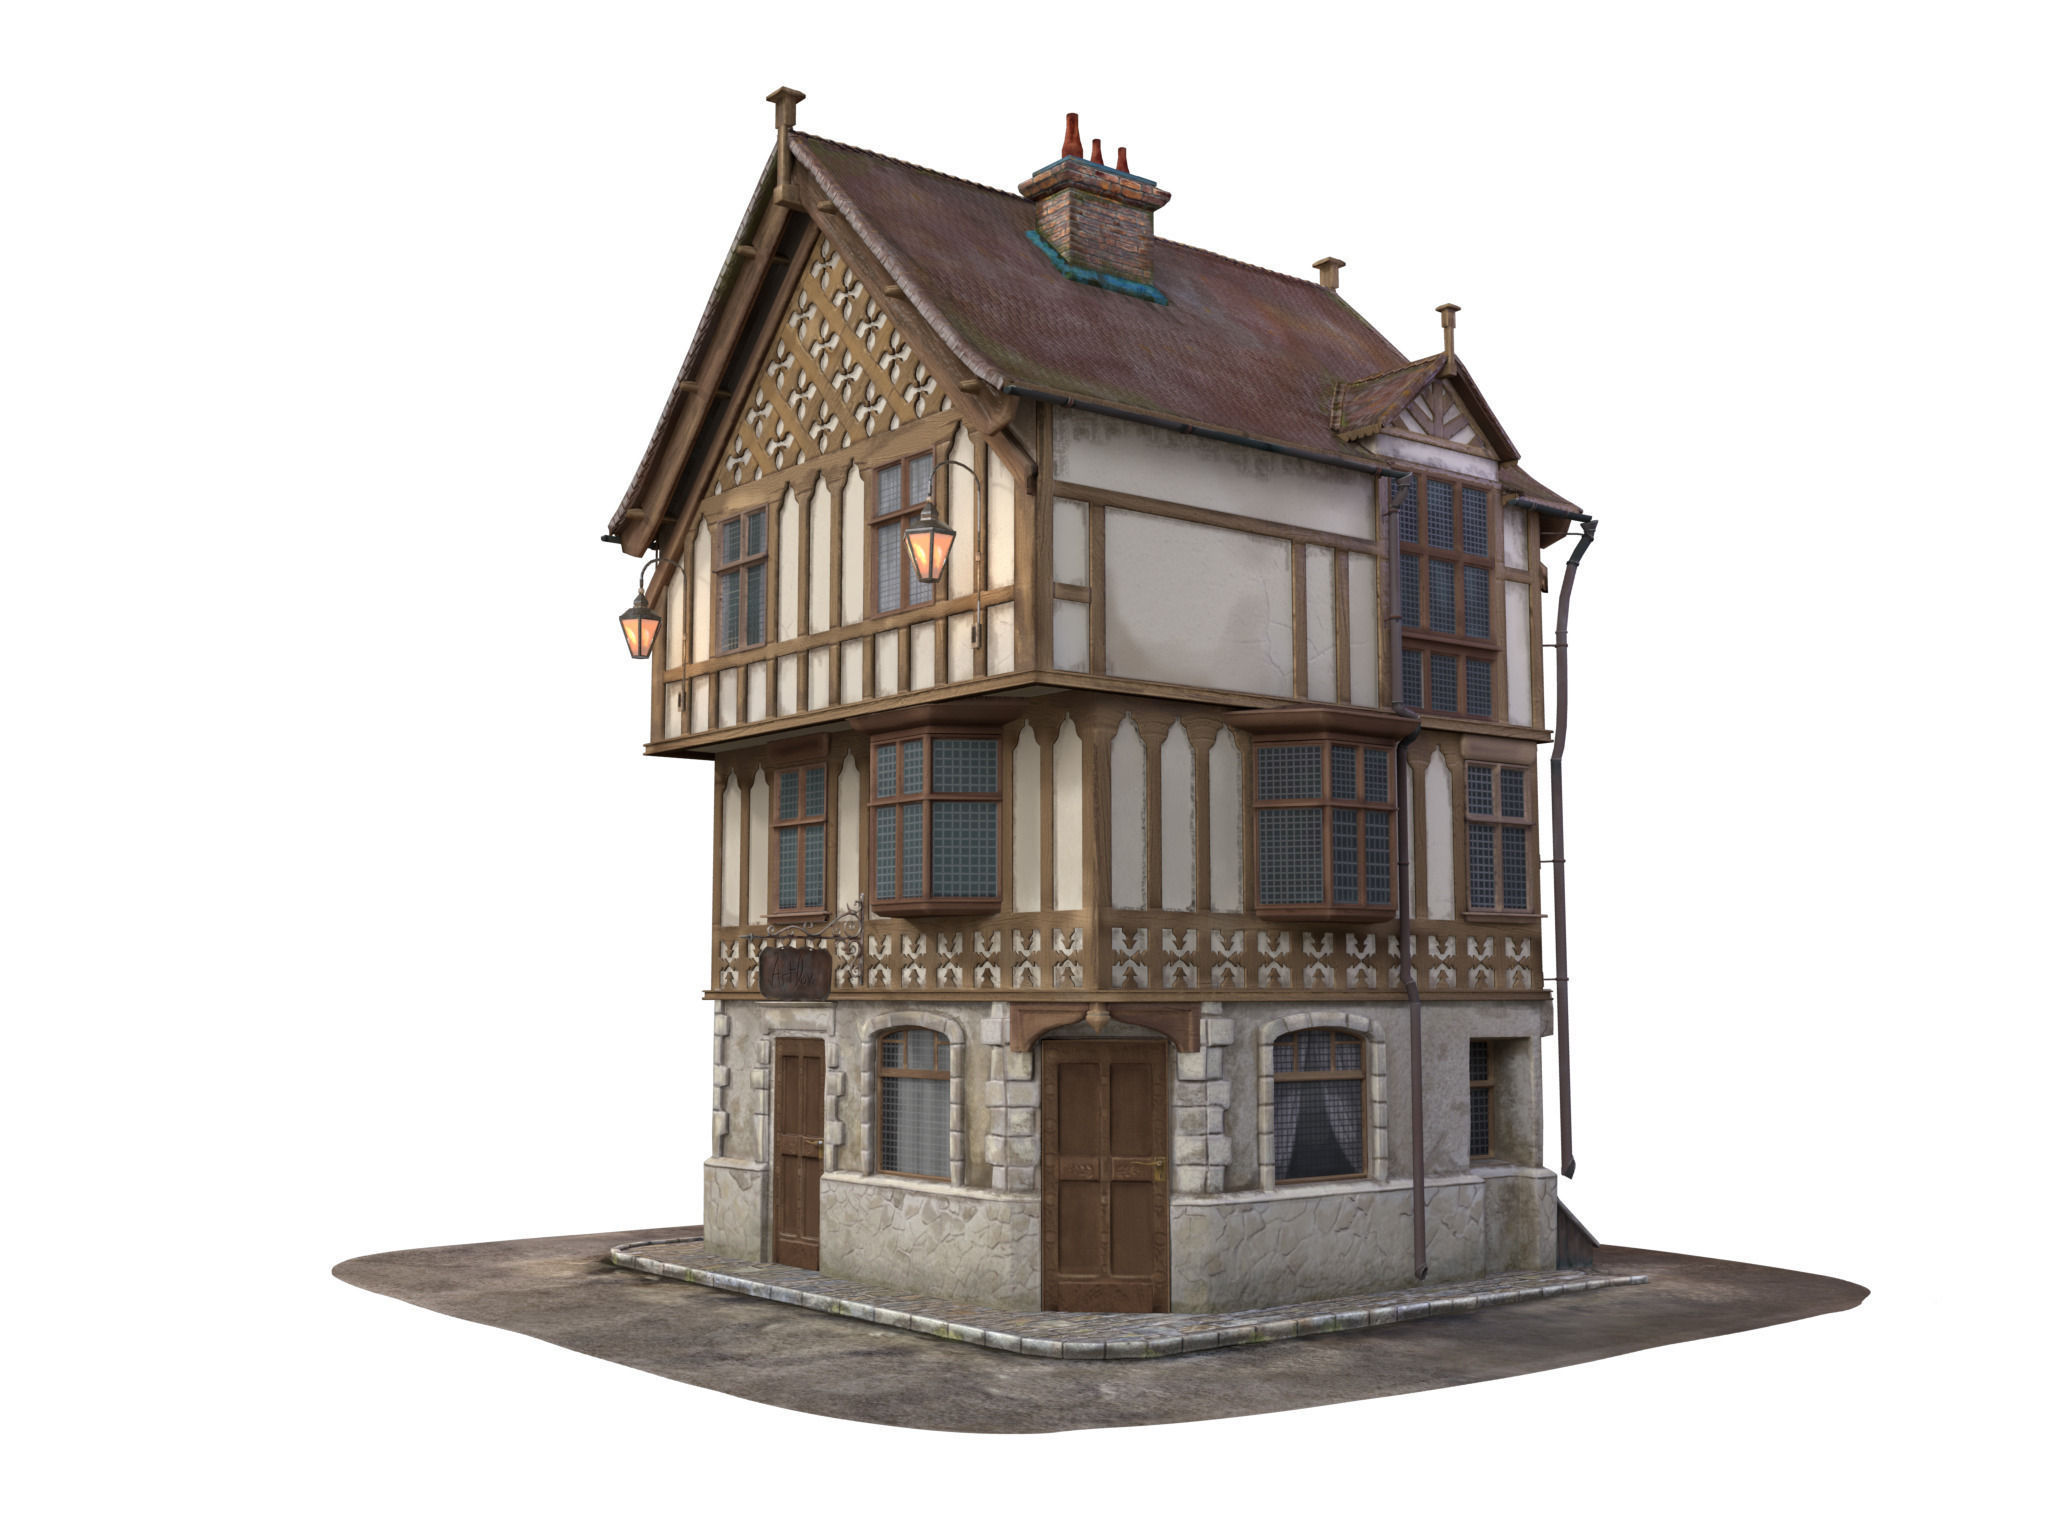 Medieval house 3d model max obj lxo lxl mtl House 3d model